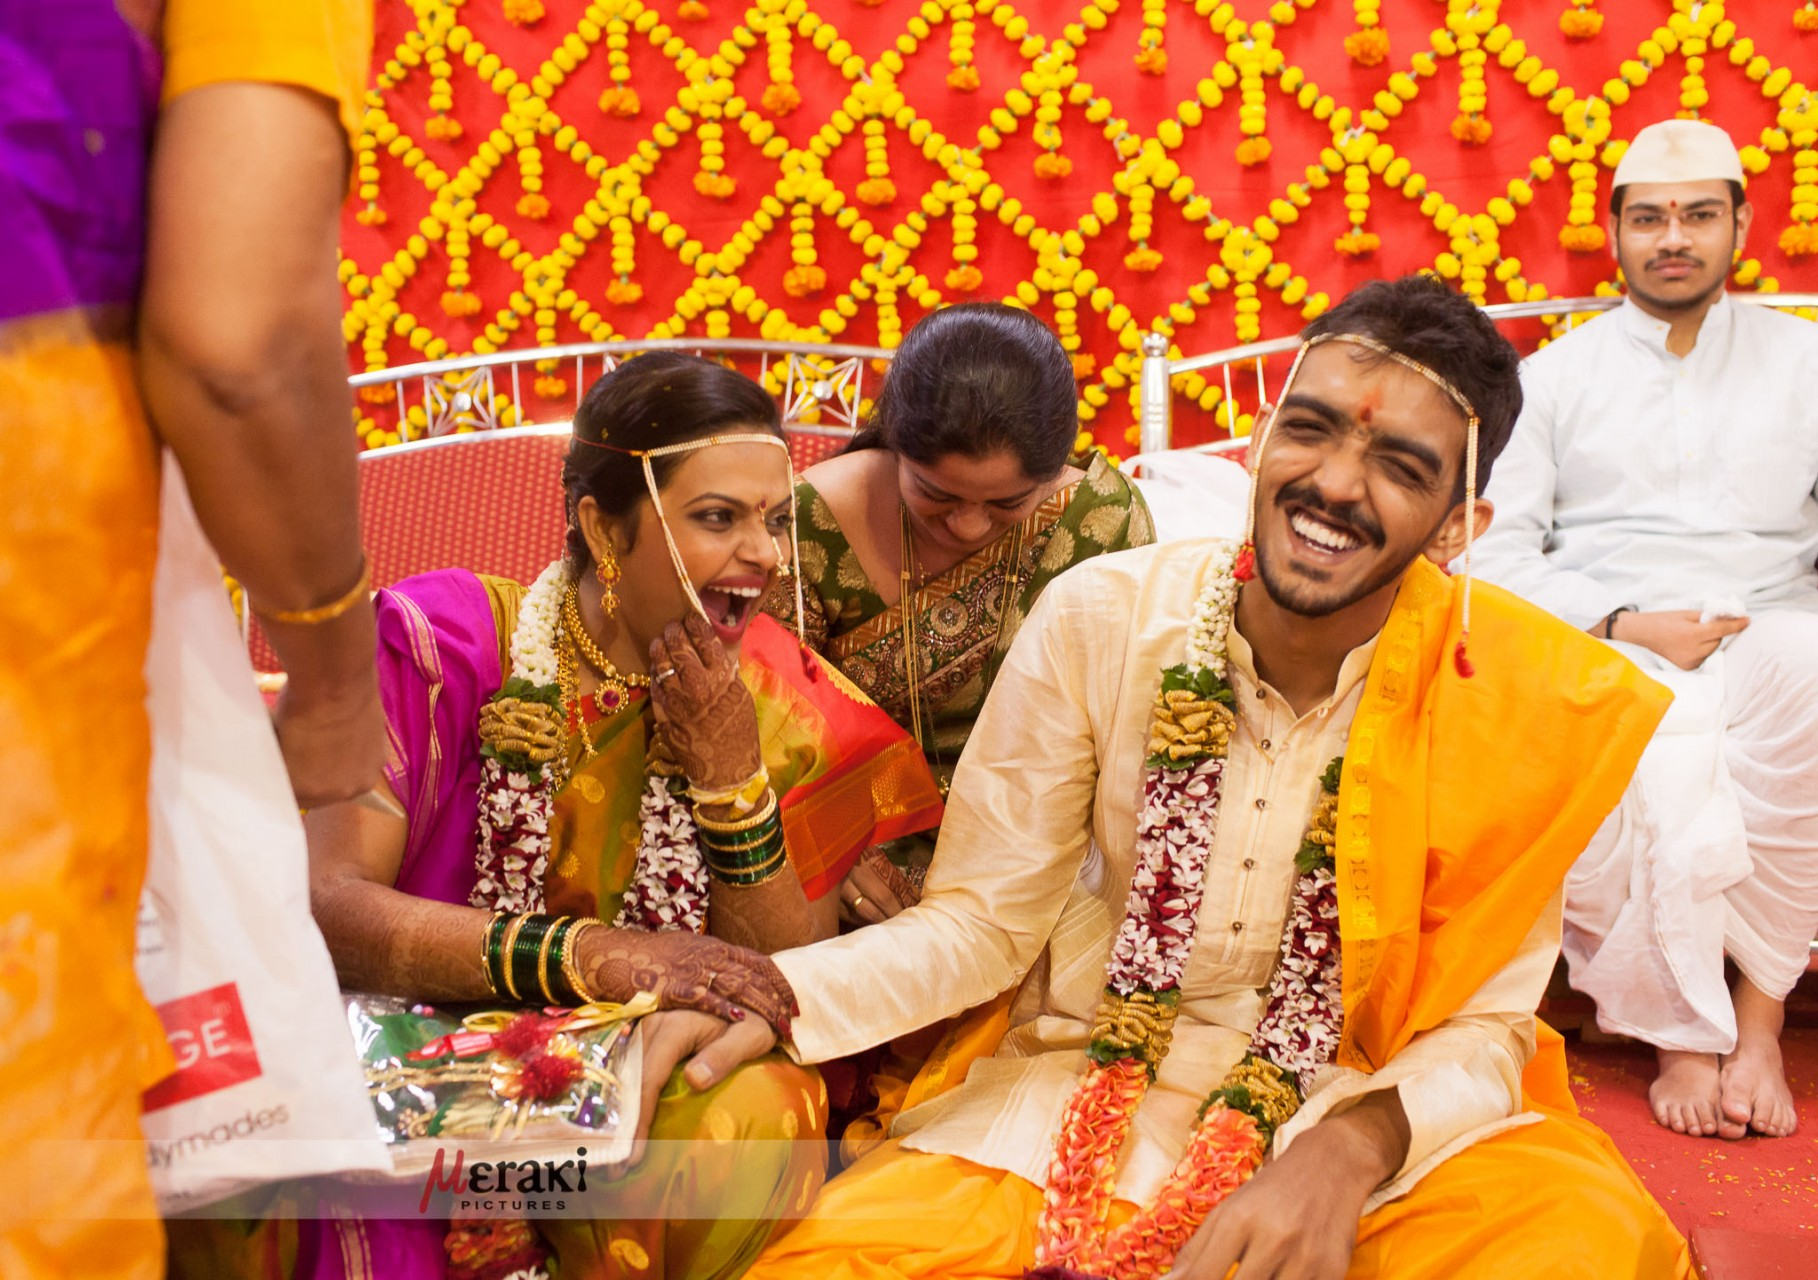 032-IMG_3022-Ajinkya_Maithili_Wedding-WeddingDay-WBS